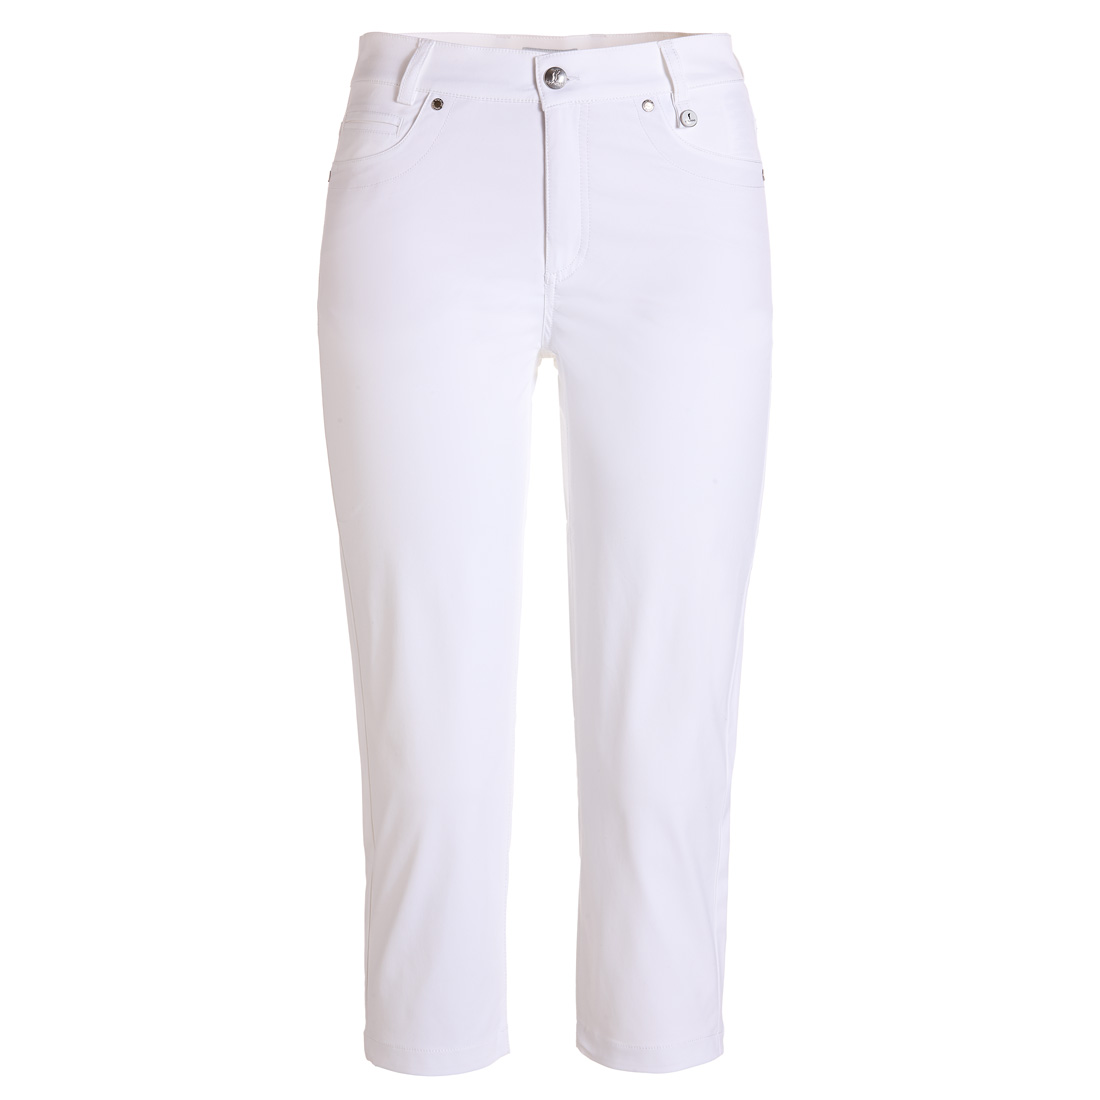 Golf Capri pants with UV protection and techno stretch